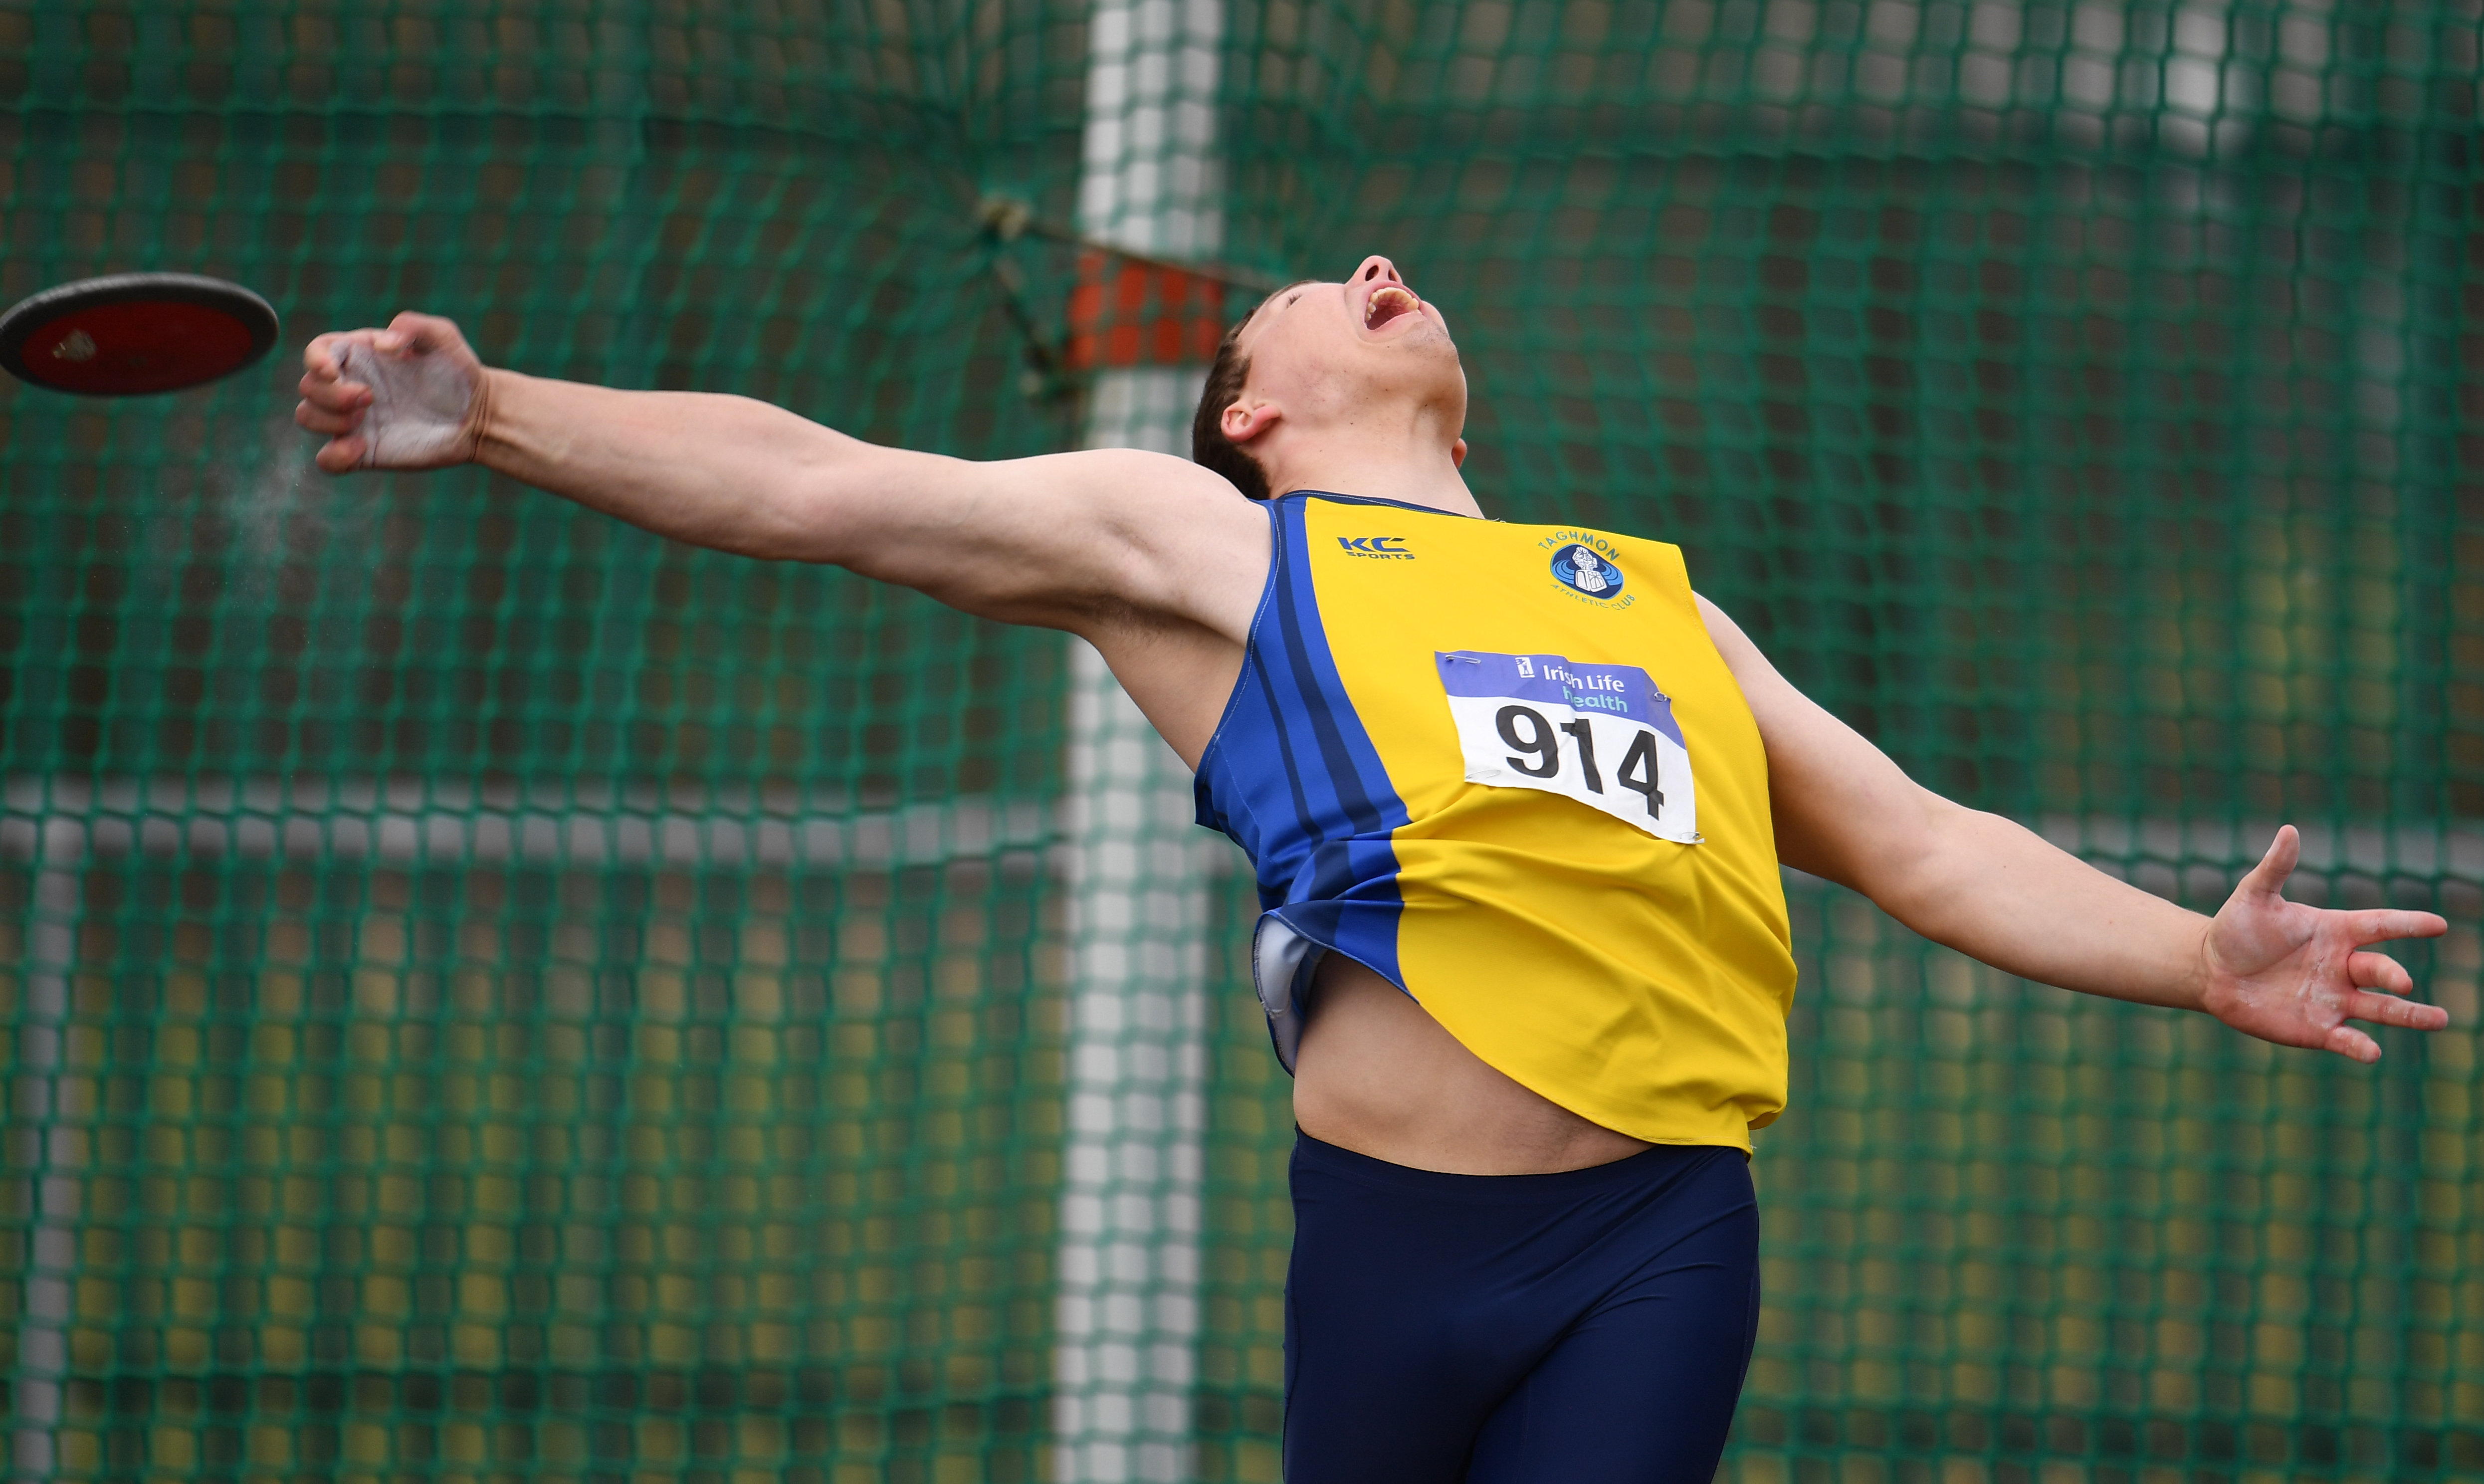 Online entry is now open for the AAI National Spring Throws